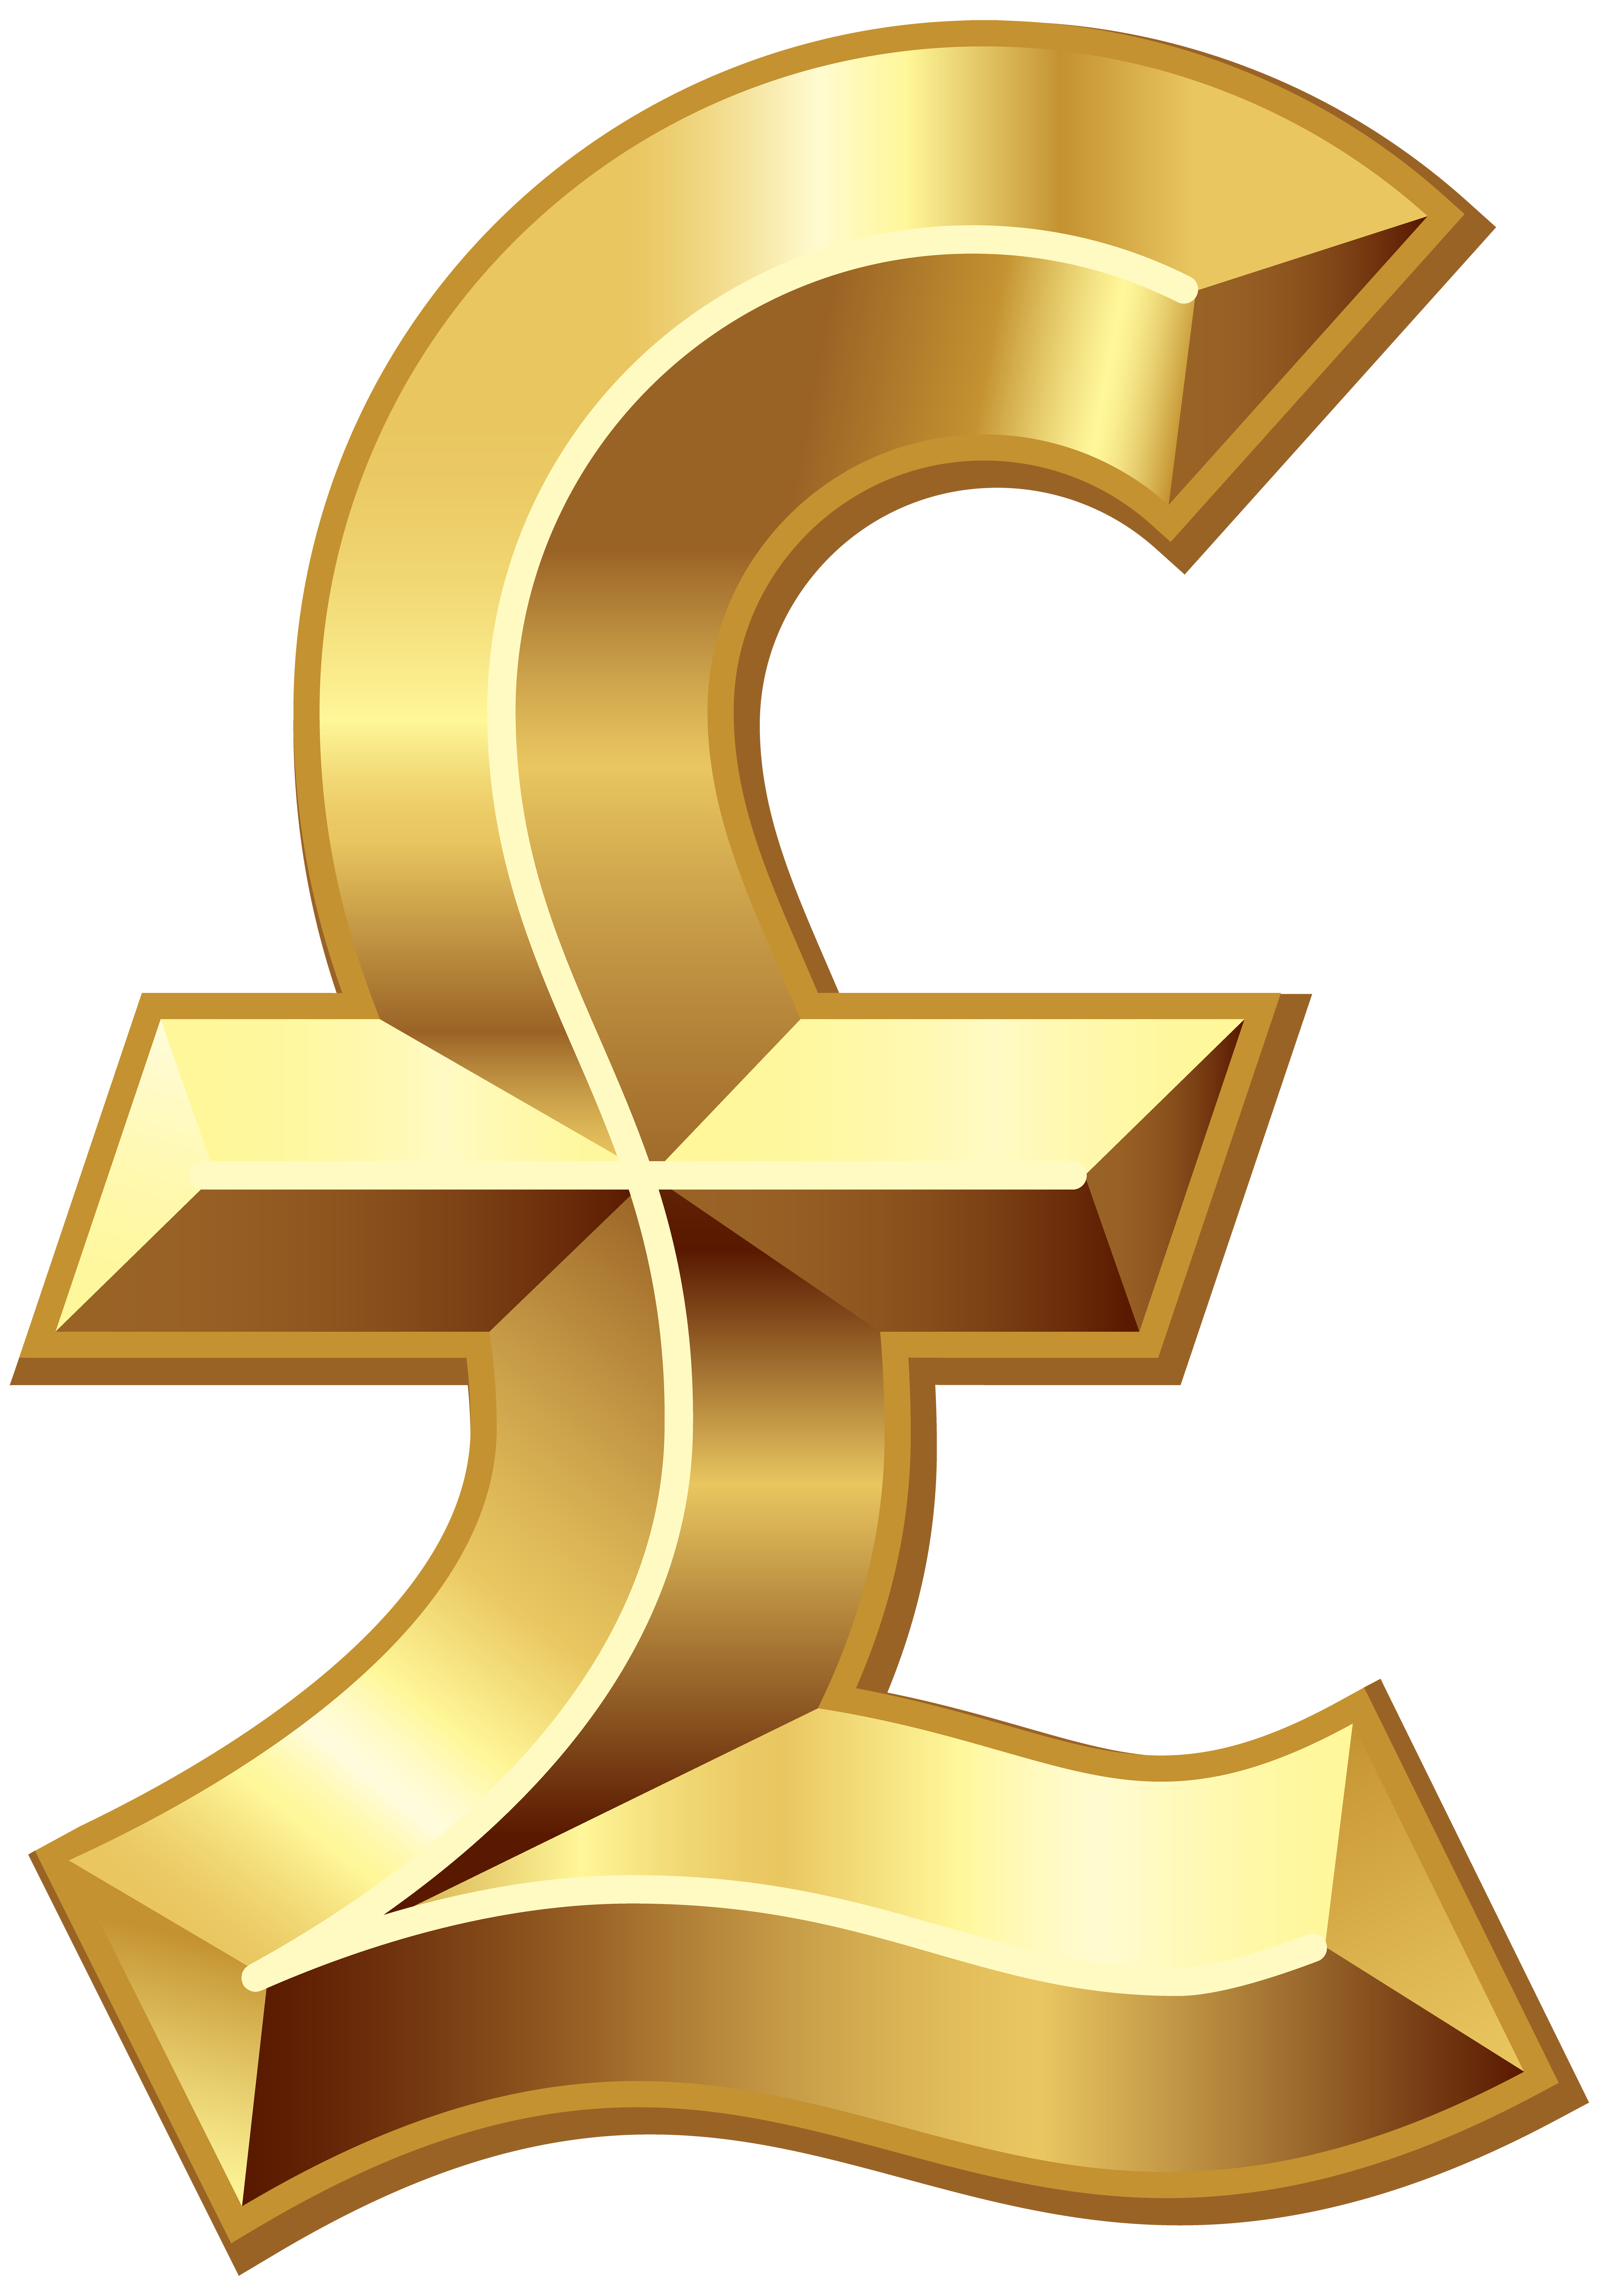 Sterling dollar sign currency. Egypt clipart pound